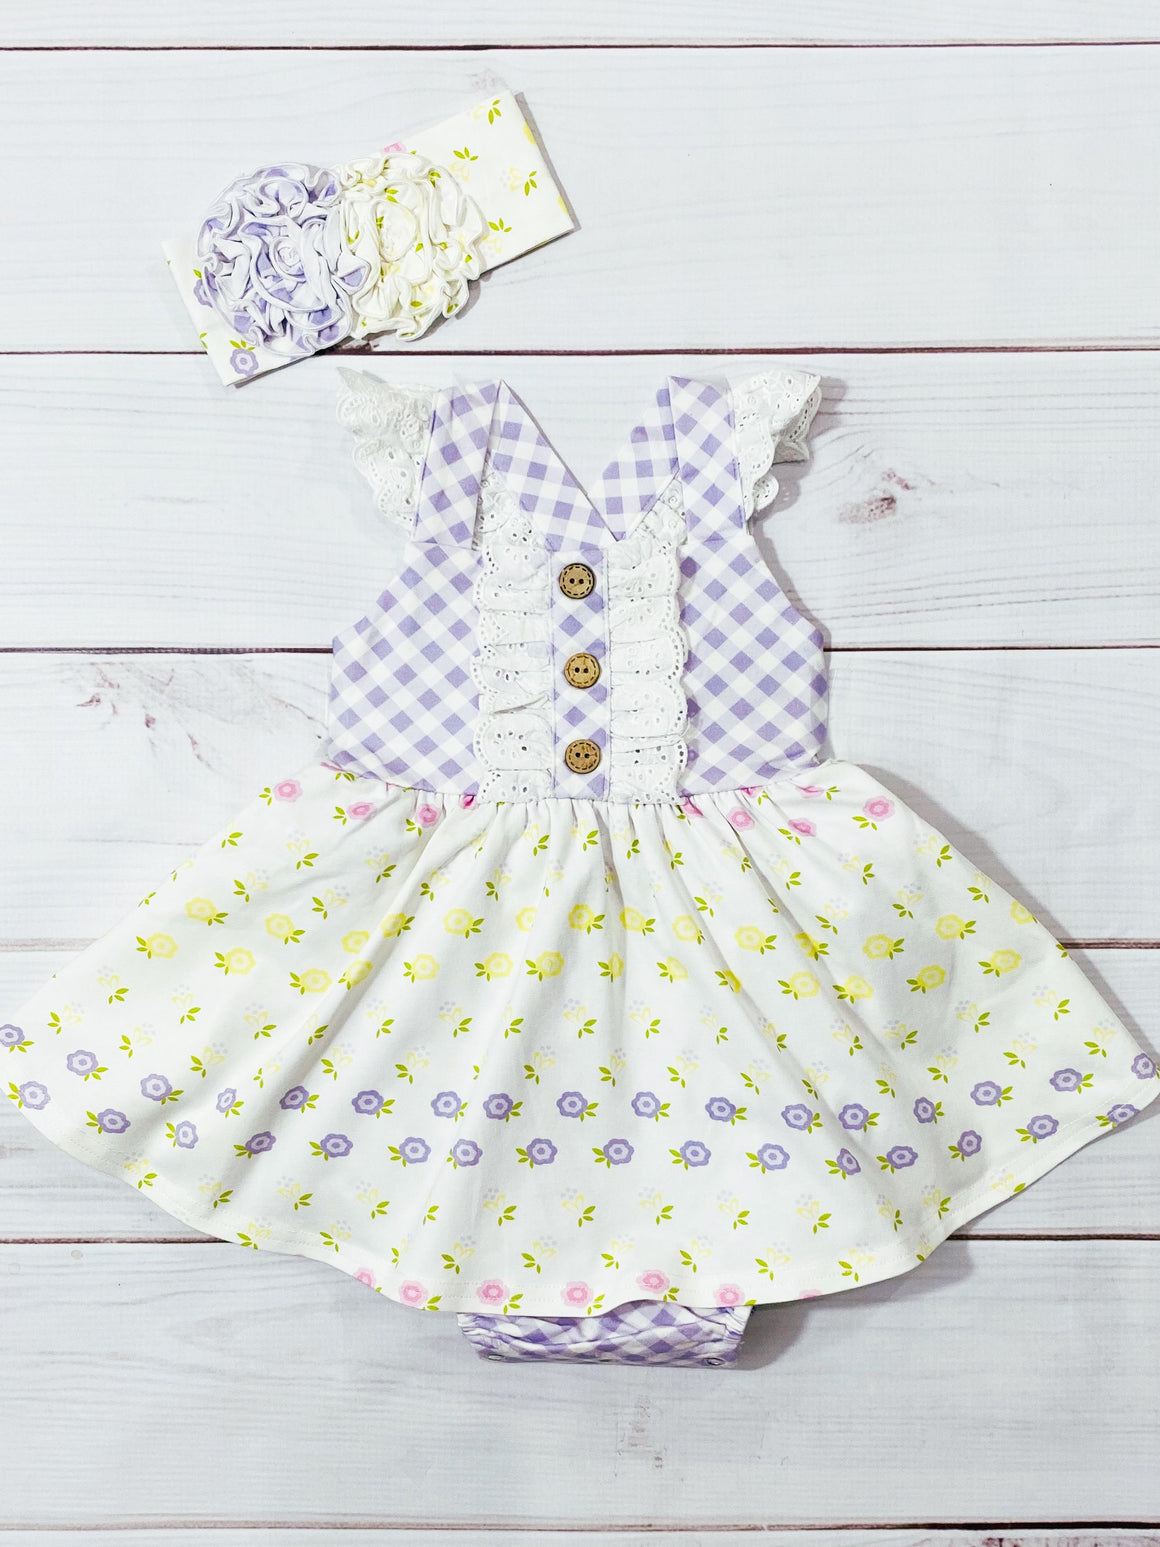 Baby girls lavender gingham flutter sleeve bubble dress in lemon yellow floral with matching headband. Adjustable straps.